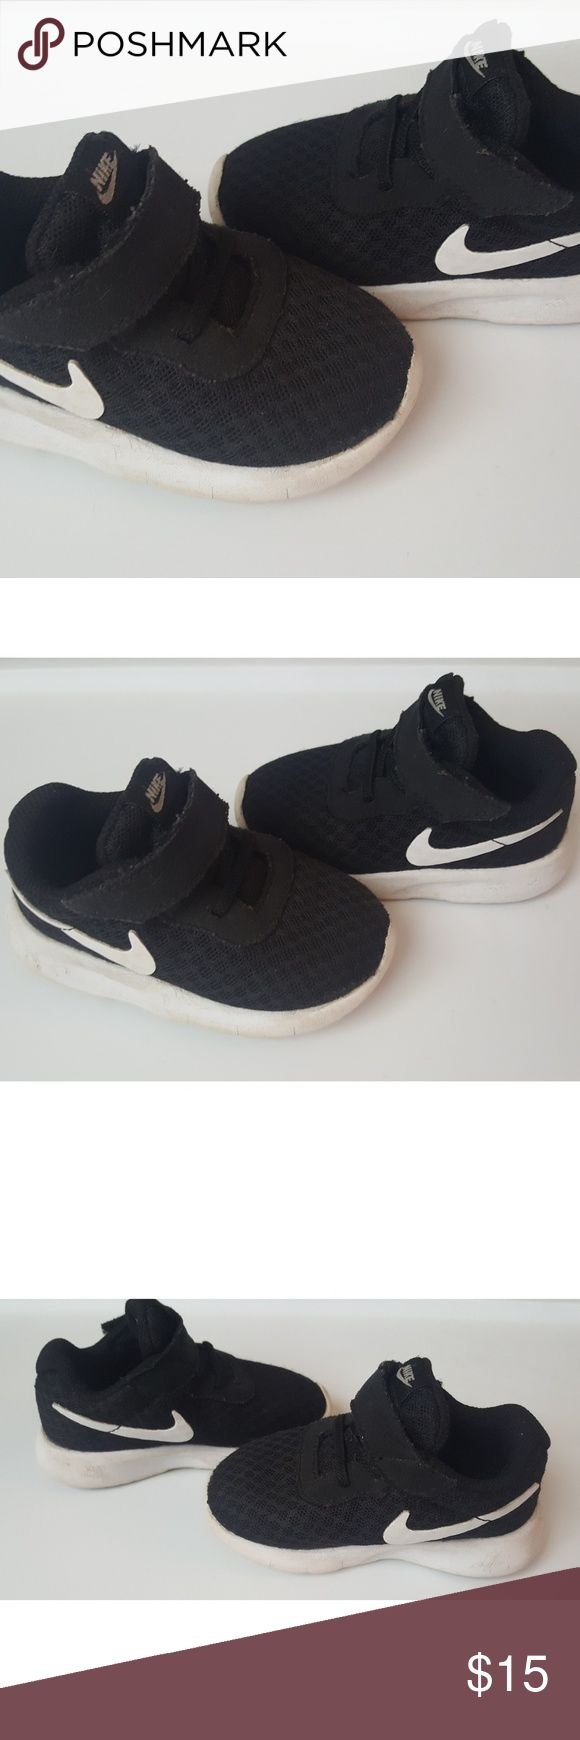 Baby boy Nike shoes -Size is 5c -Color is Black and white -Brand is Nike  -Good used condition (some wear on the bottom as you can see in the pictures)  **All items come from a smoke free and pet free home  **I ship daily  Feel free to send offers and check out my other items for bundle discounts :)  Have a wonderful day!! Nike Shoes Sneakers